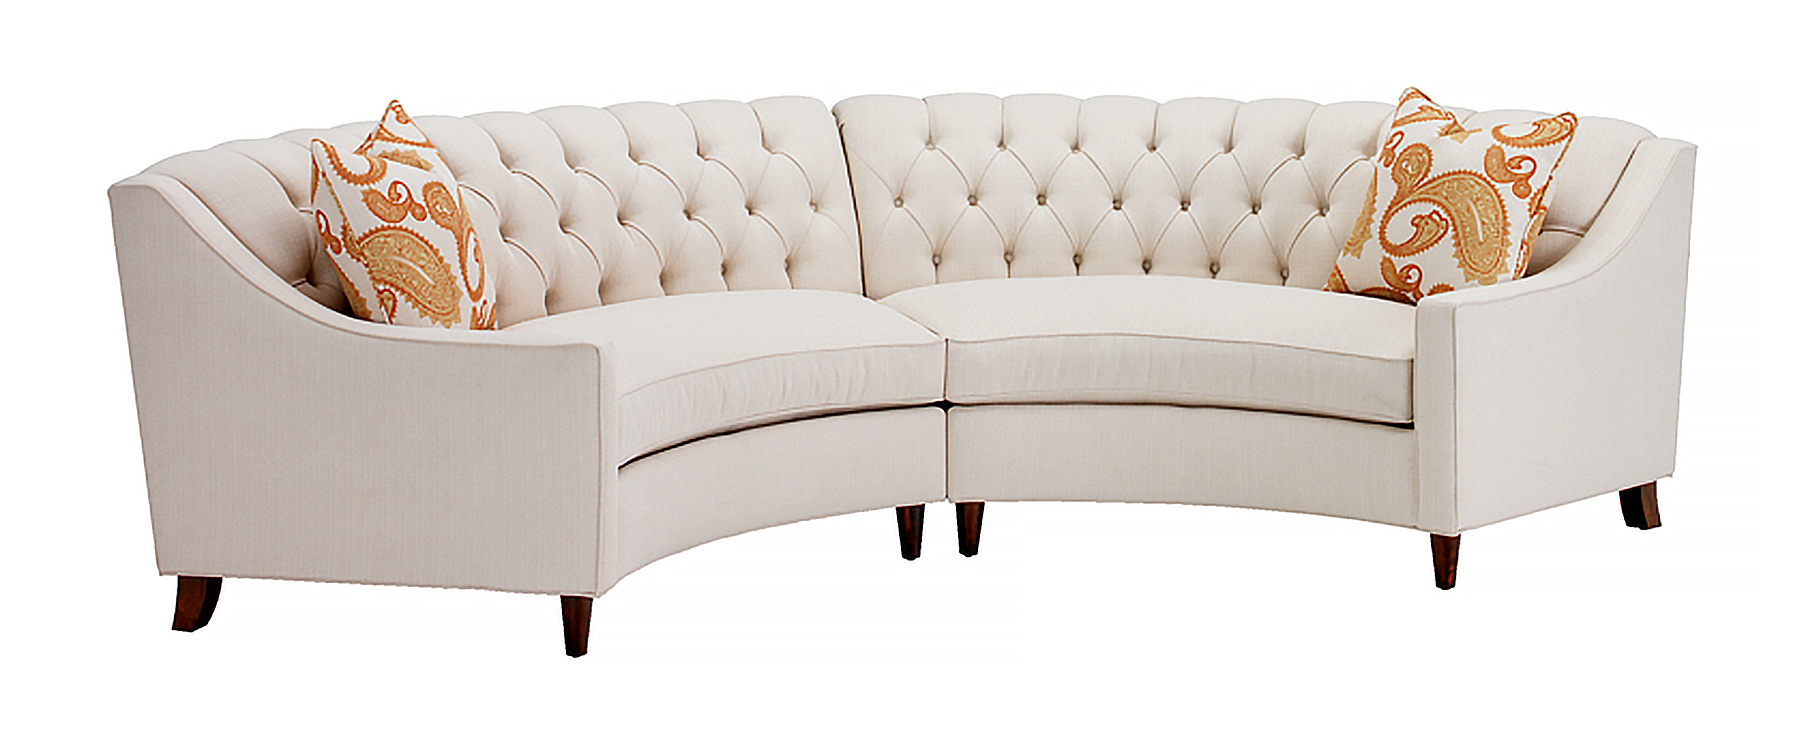 Curved Sofa The Memphis Curved Sofa Portland Furniture